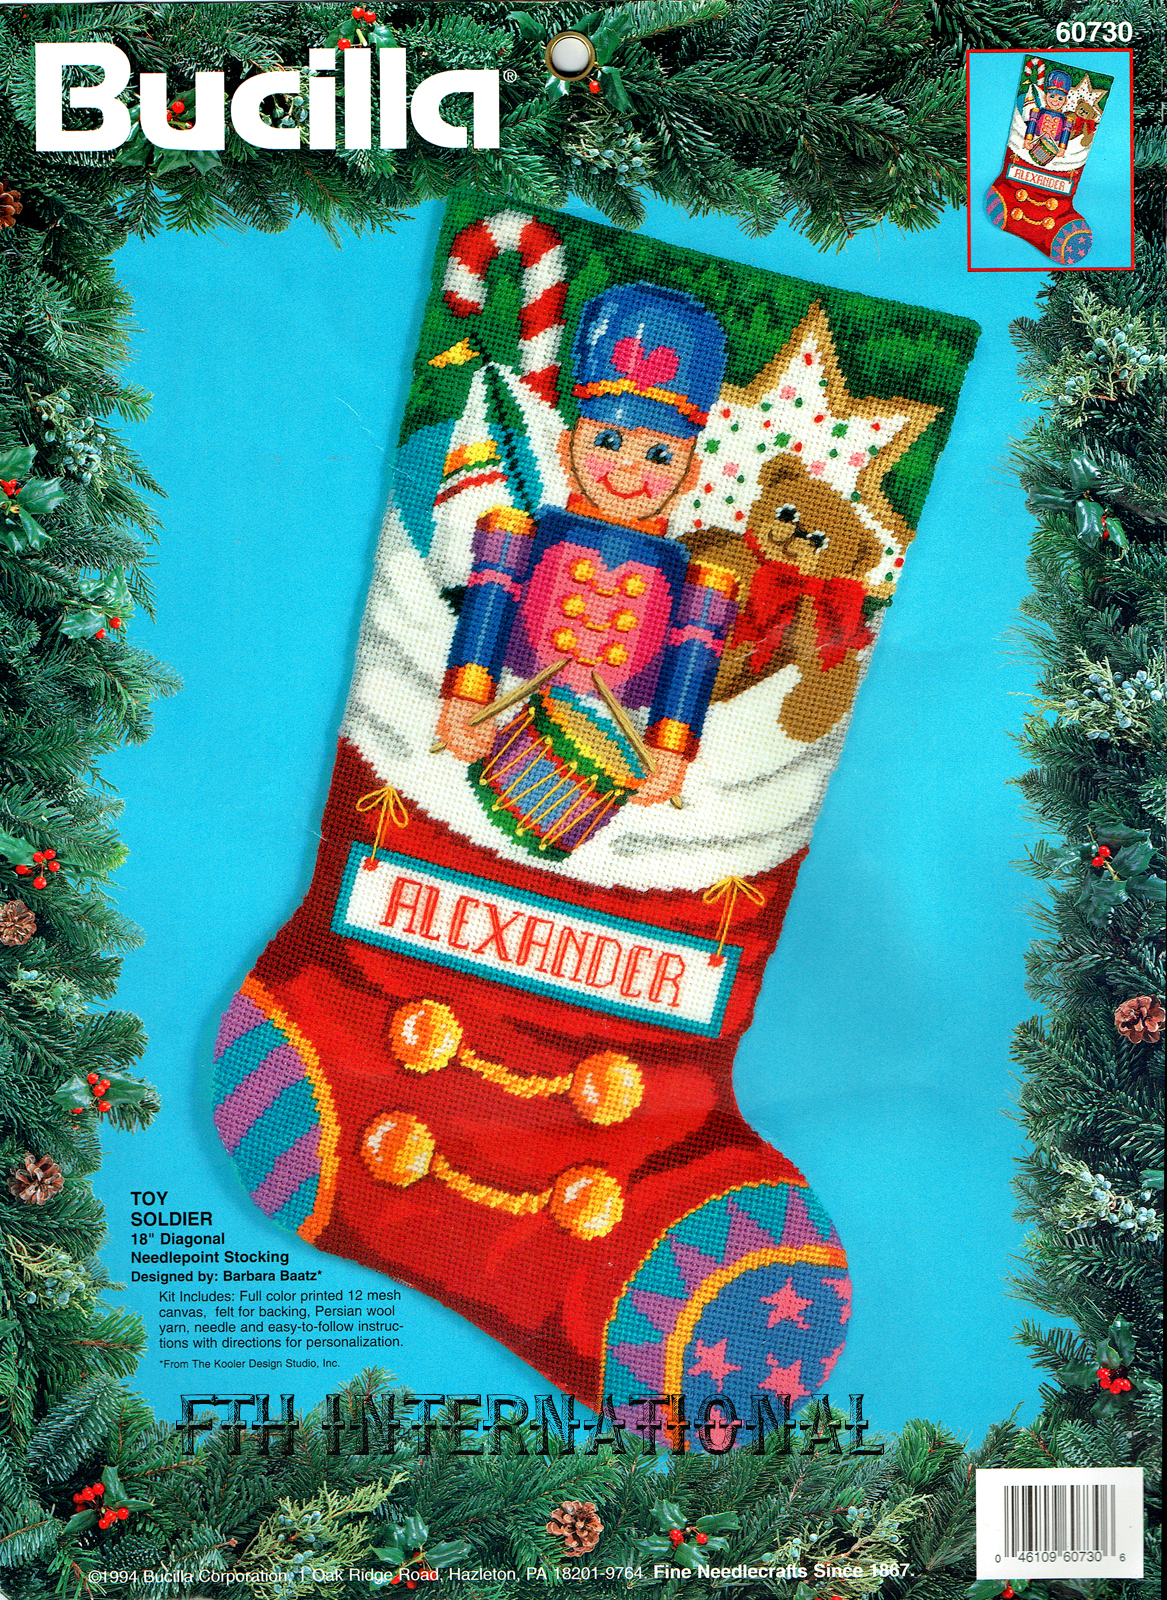 60730FCWMR1 Toy Soldier Stocking Front